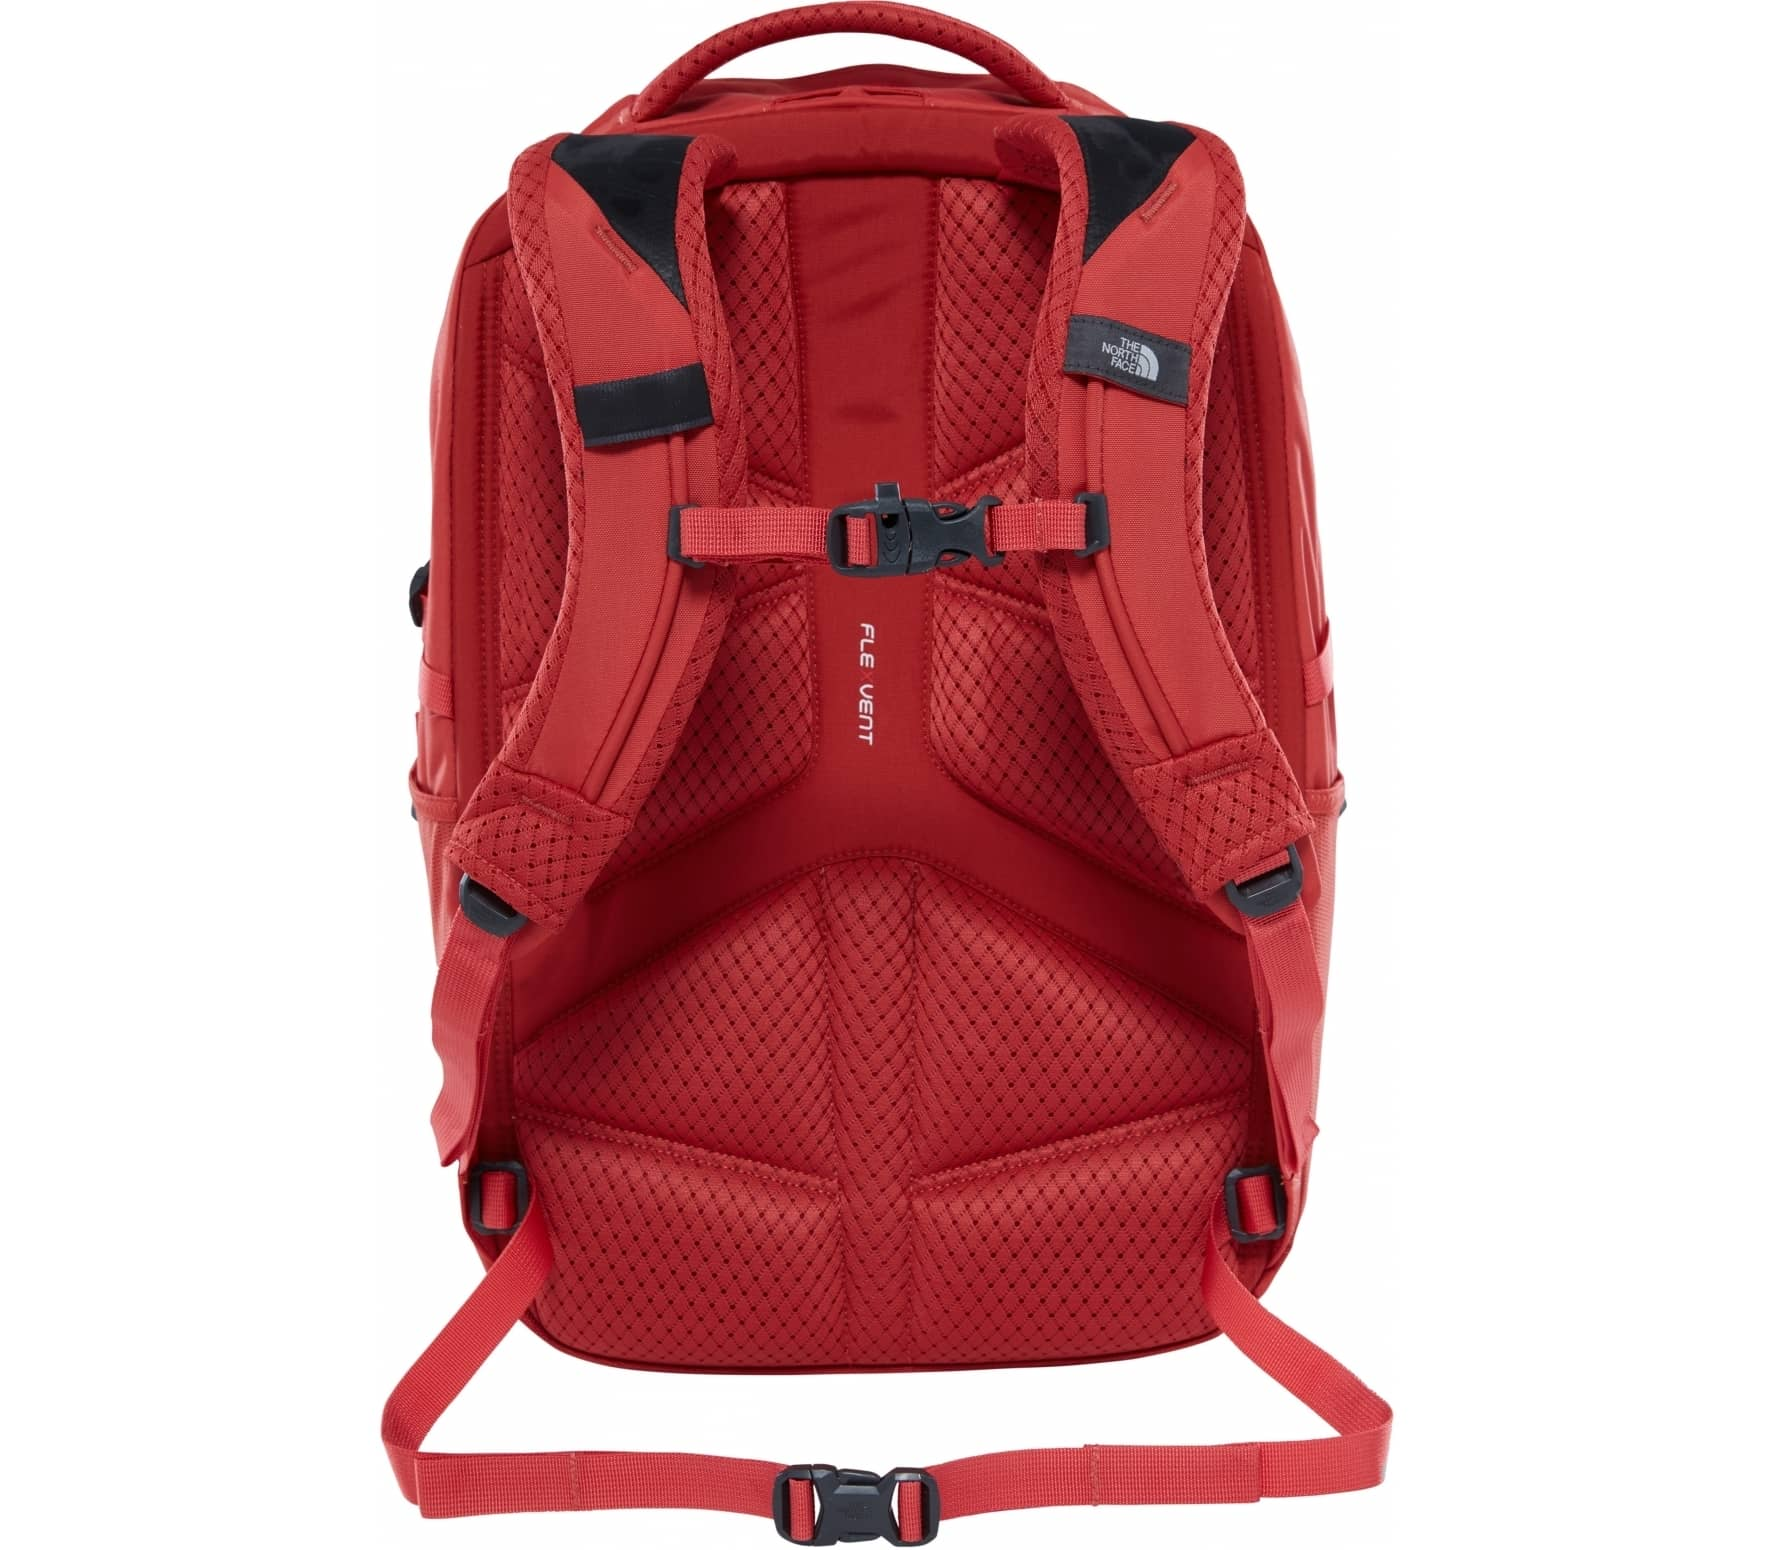 on sale 0f0f8 bde3b The North Face Borealis Damen Daypack Unisex red